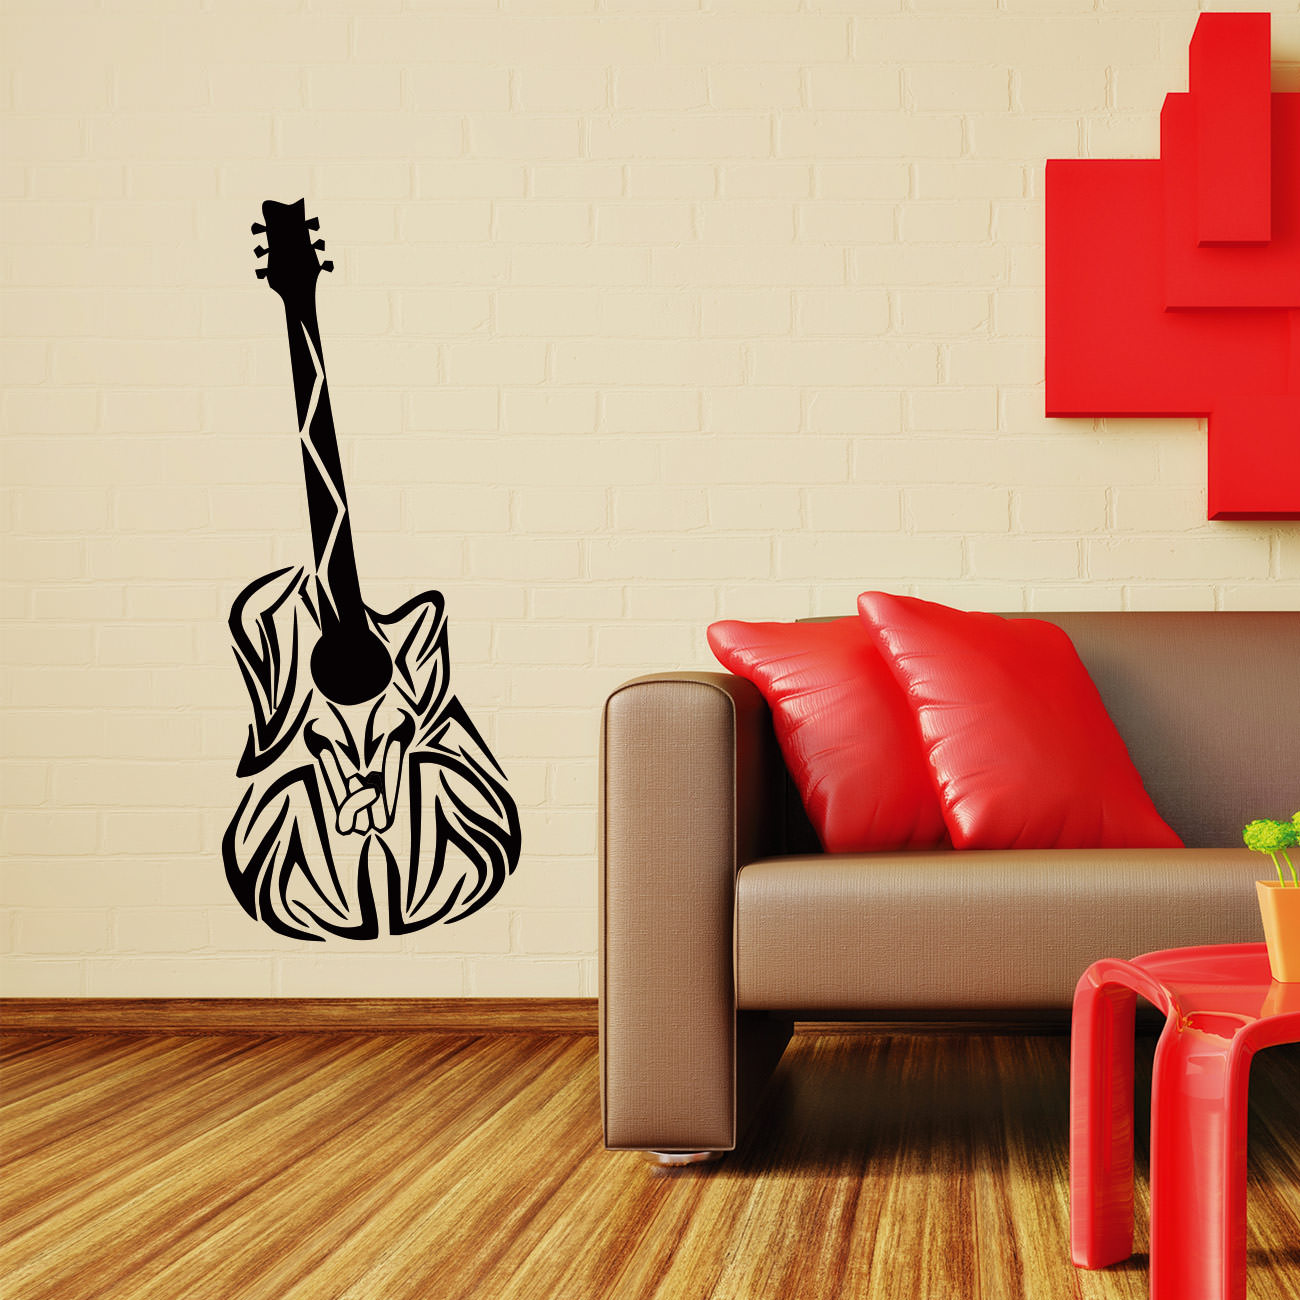 wandtattoos gitarre musik f r hobbybereich od wohnzimmer sunnywall online shop. Black Bedroom Furniture Sets. Home Design Ideas